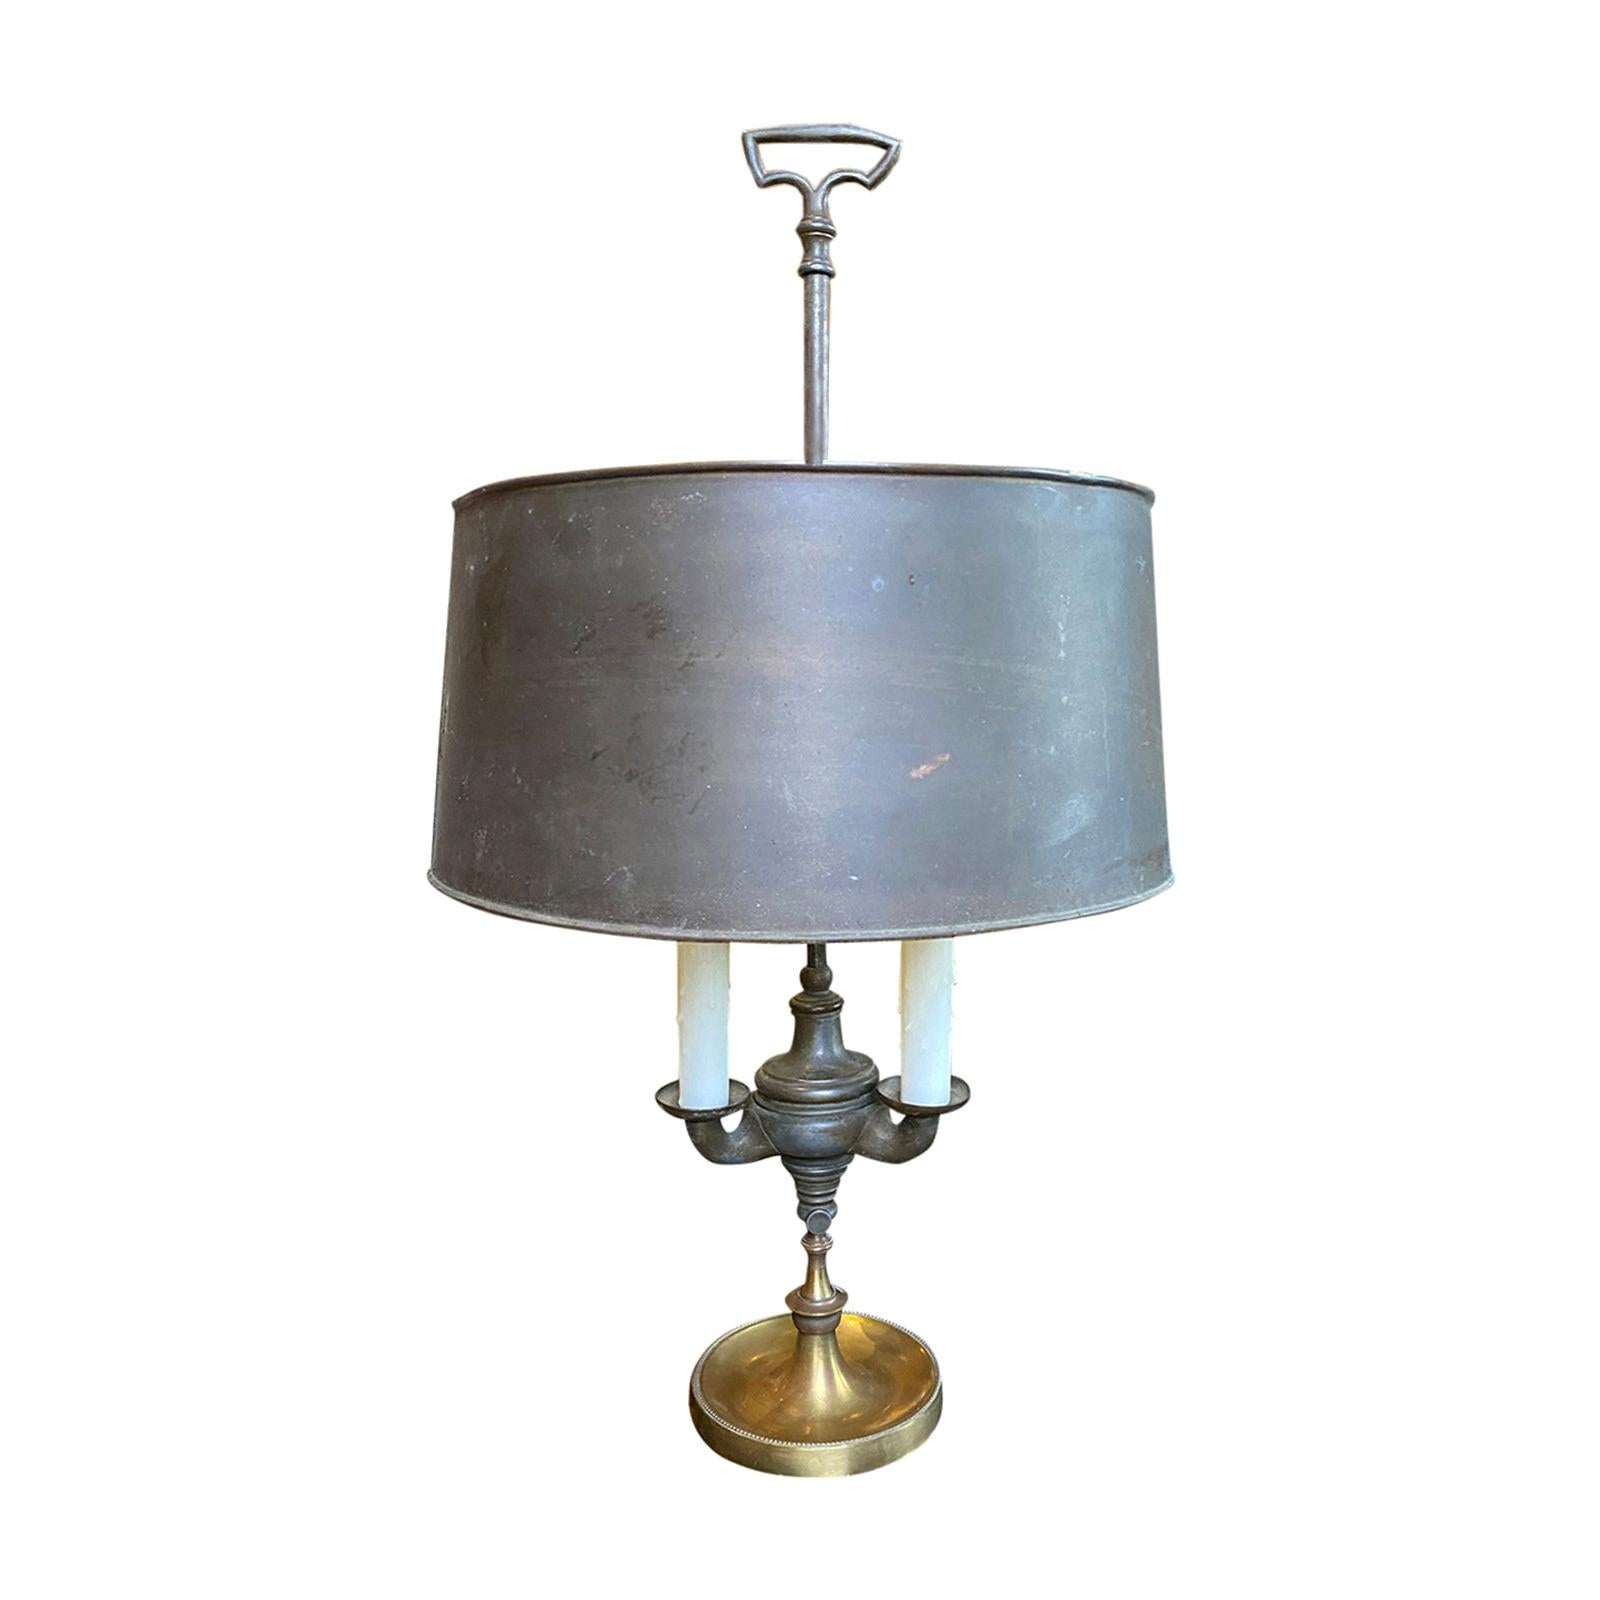 Early 20th Century American Bronze Bouillotte Lamp with Tole Shade